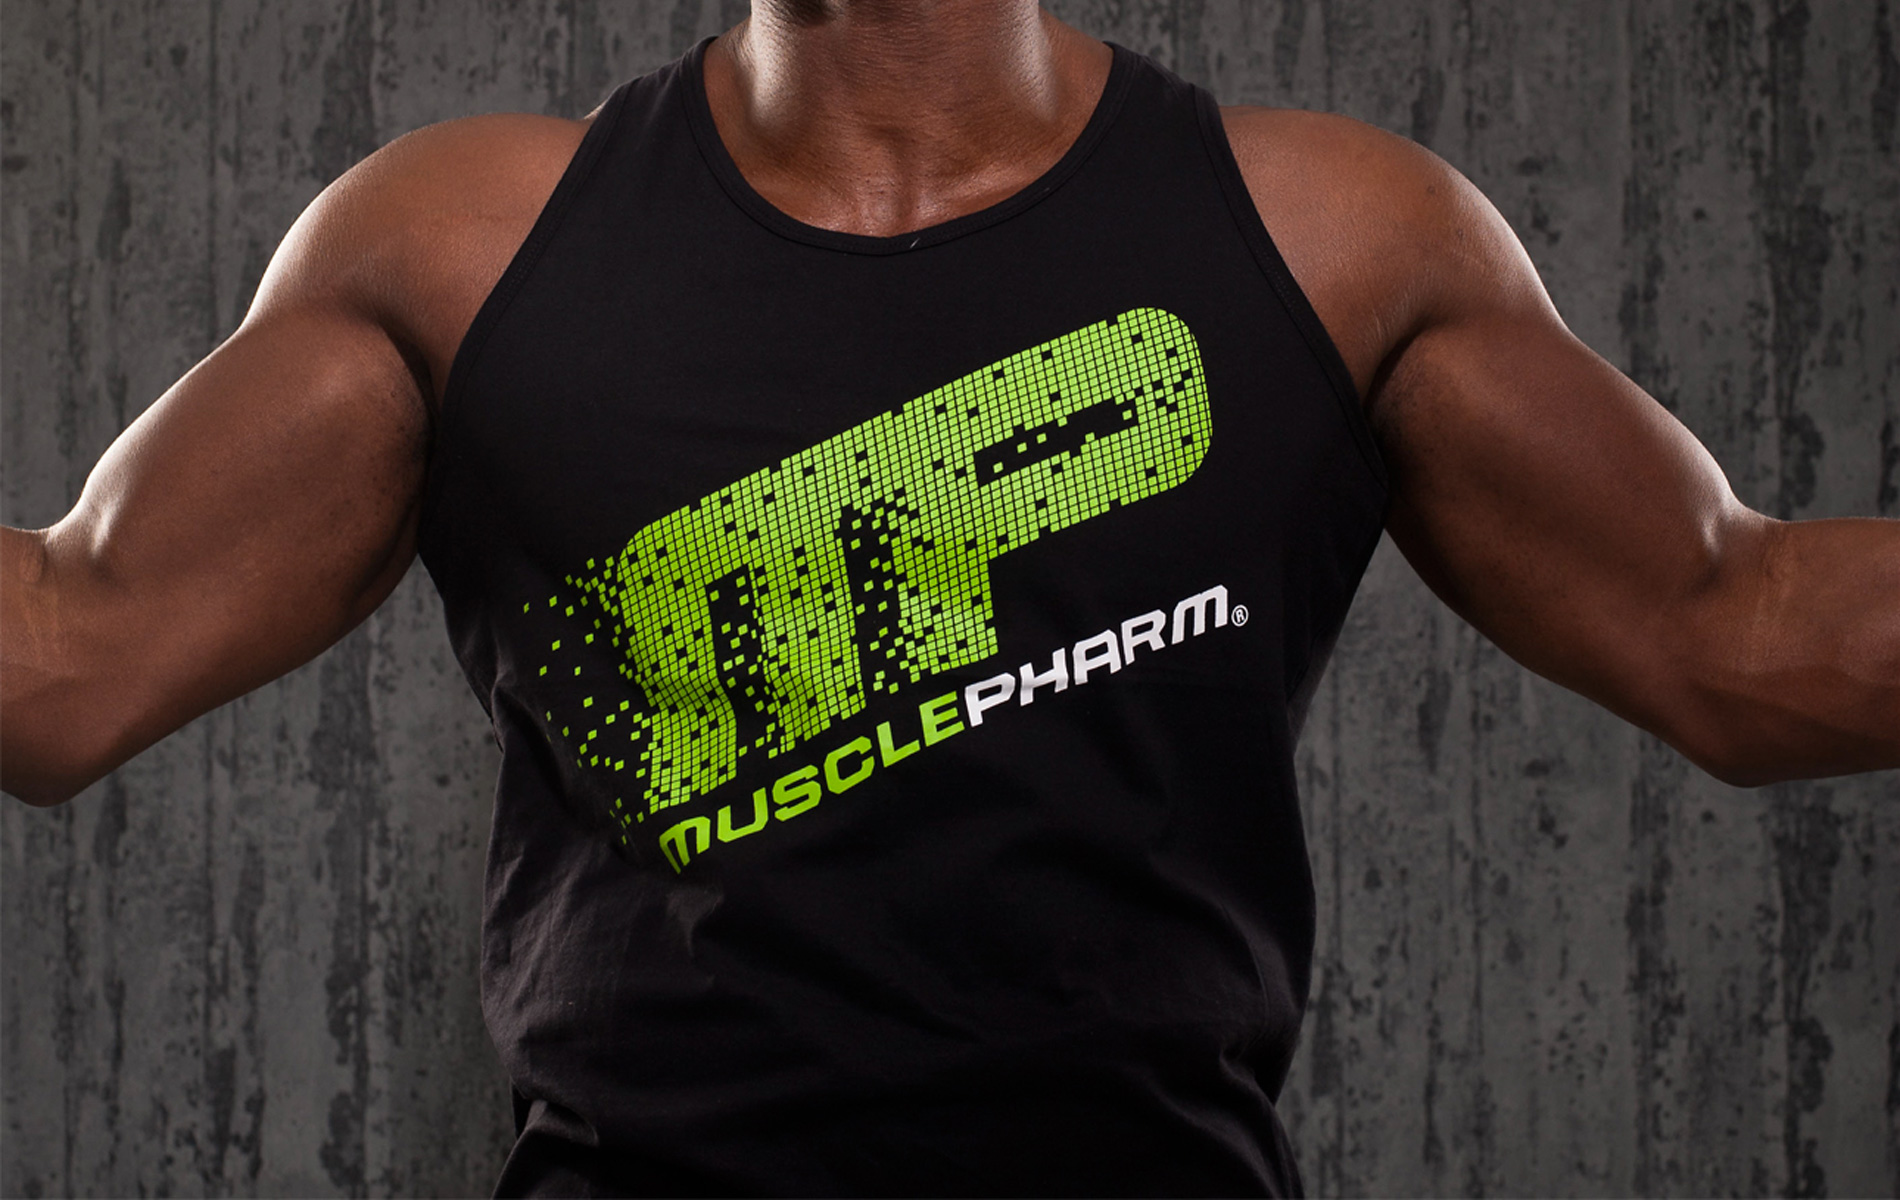 muscle-phar,-services